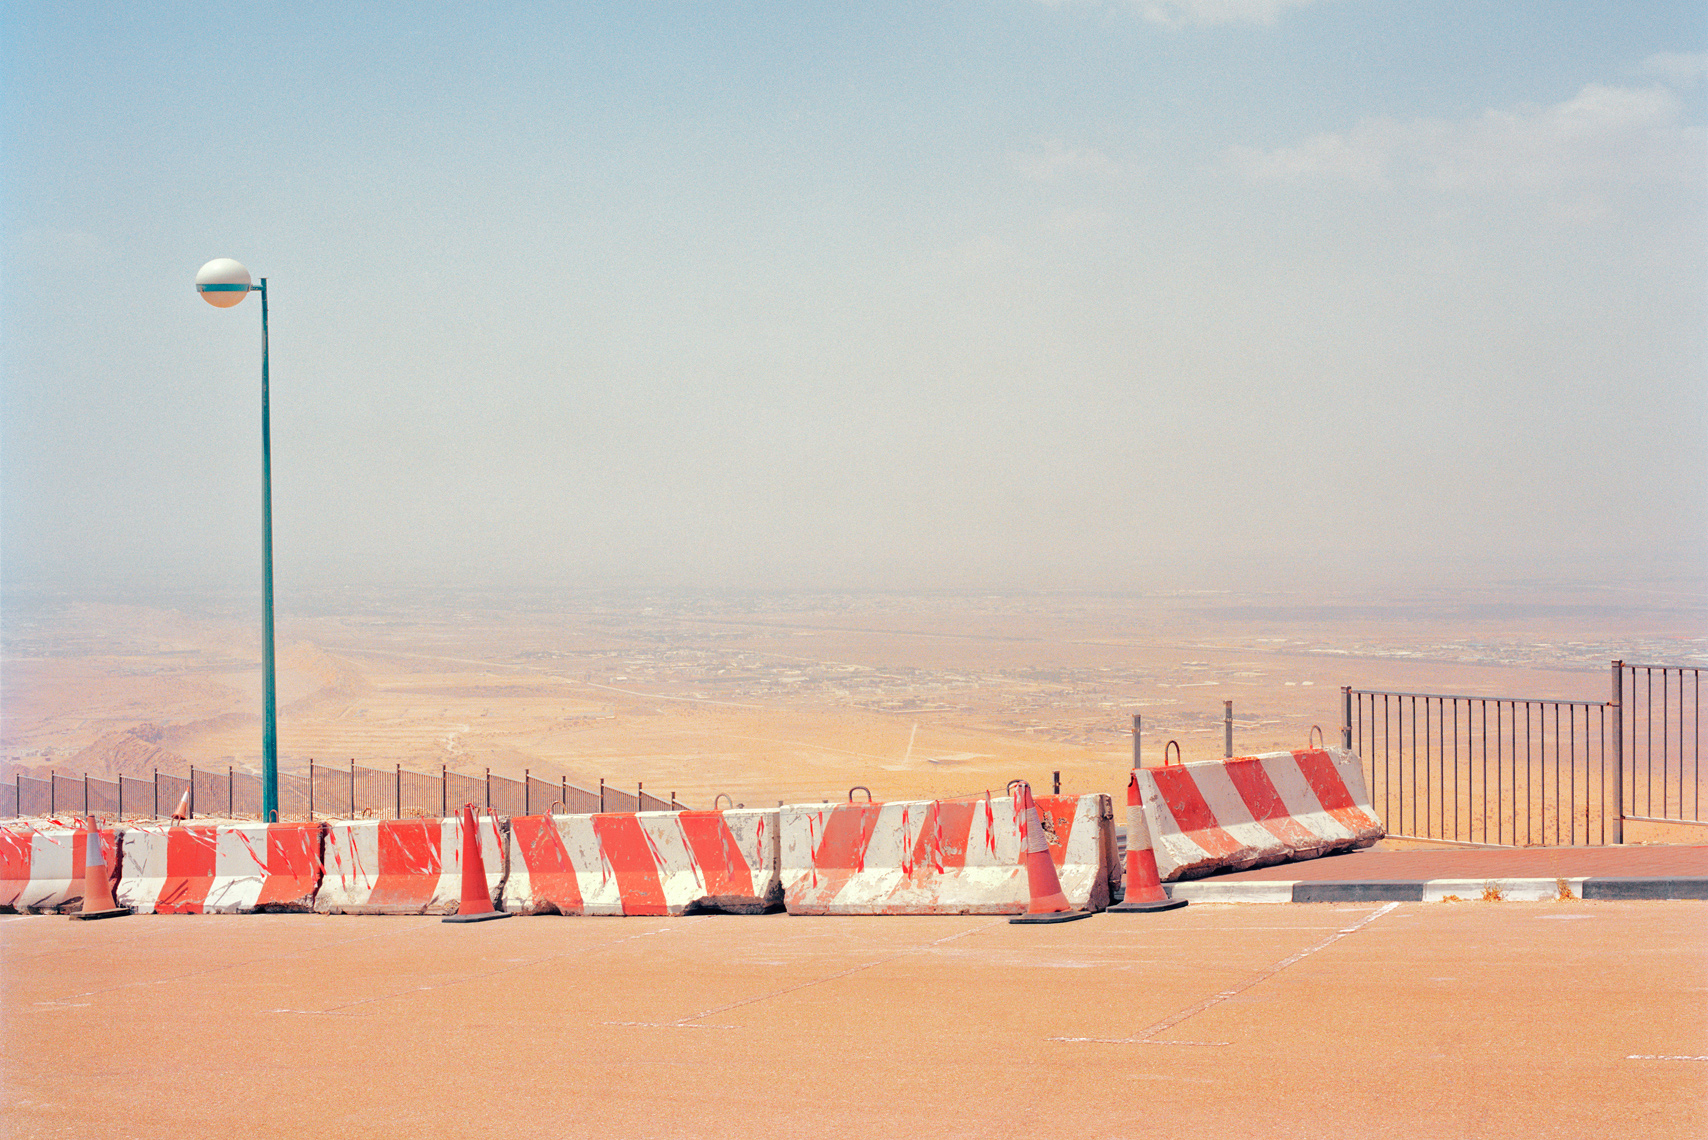 ChrisSisarich_AbuDhabi_Red-White-Barrier